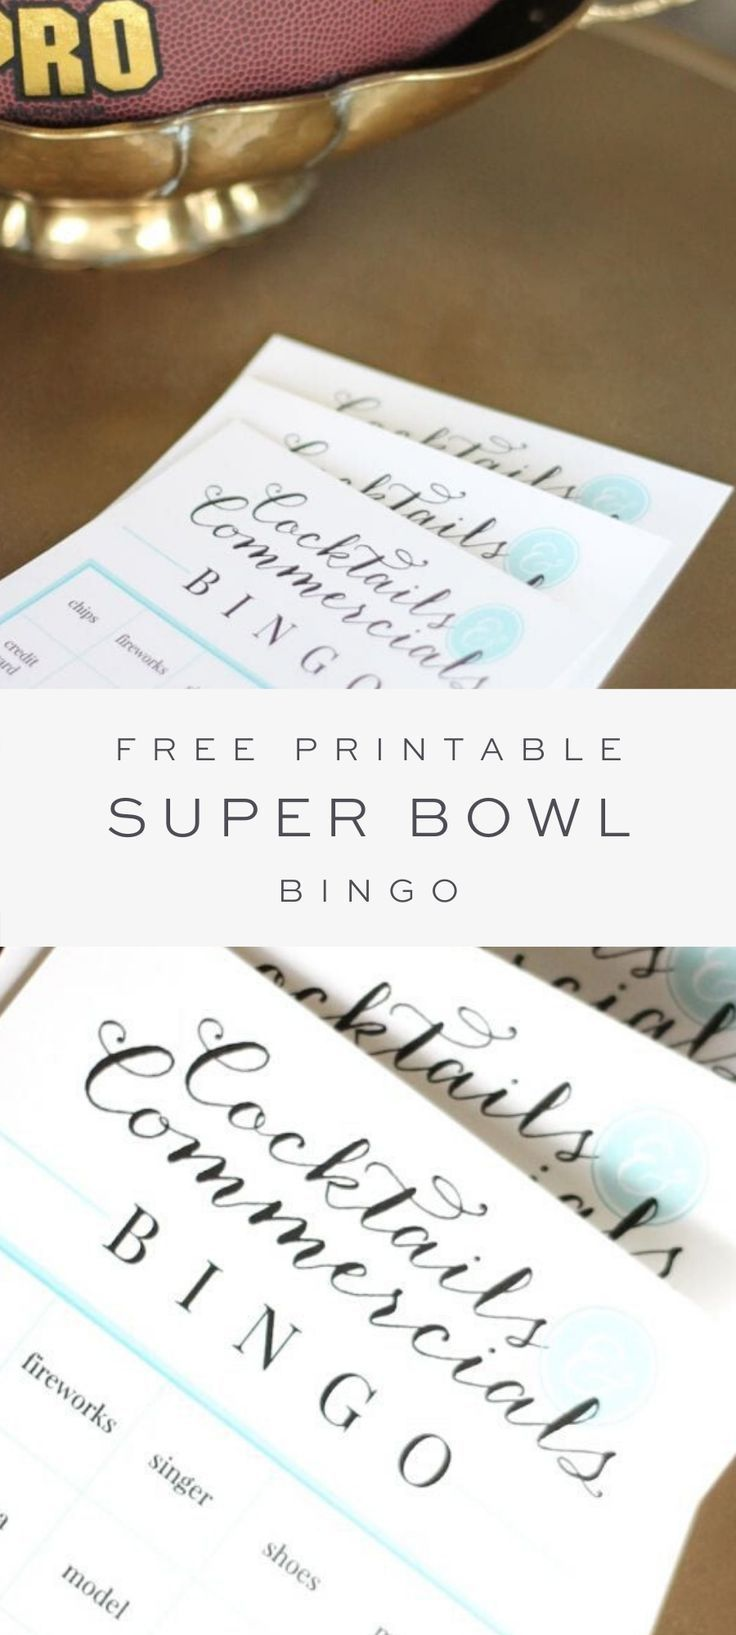 Cocktails & Commercials Super Bowl Printable -  Join in the fun with these free printable Super Bowl bingo cards that will keep you on your toes du - #Bowl #cocktails #commercials #printable #super #superbowlfoodideas #superbowlfoods #superbowlpartydecorations #superbowlpartyfood #superbowlpartyfoodappetizers #superbowlpartygames #superbowlpartyideasdecorations #superbowlrings